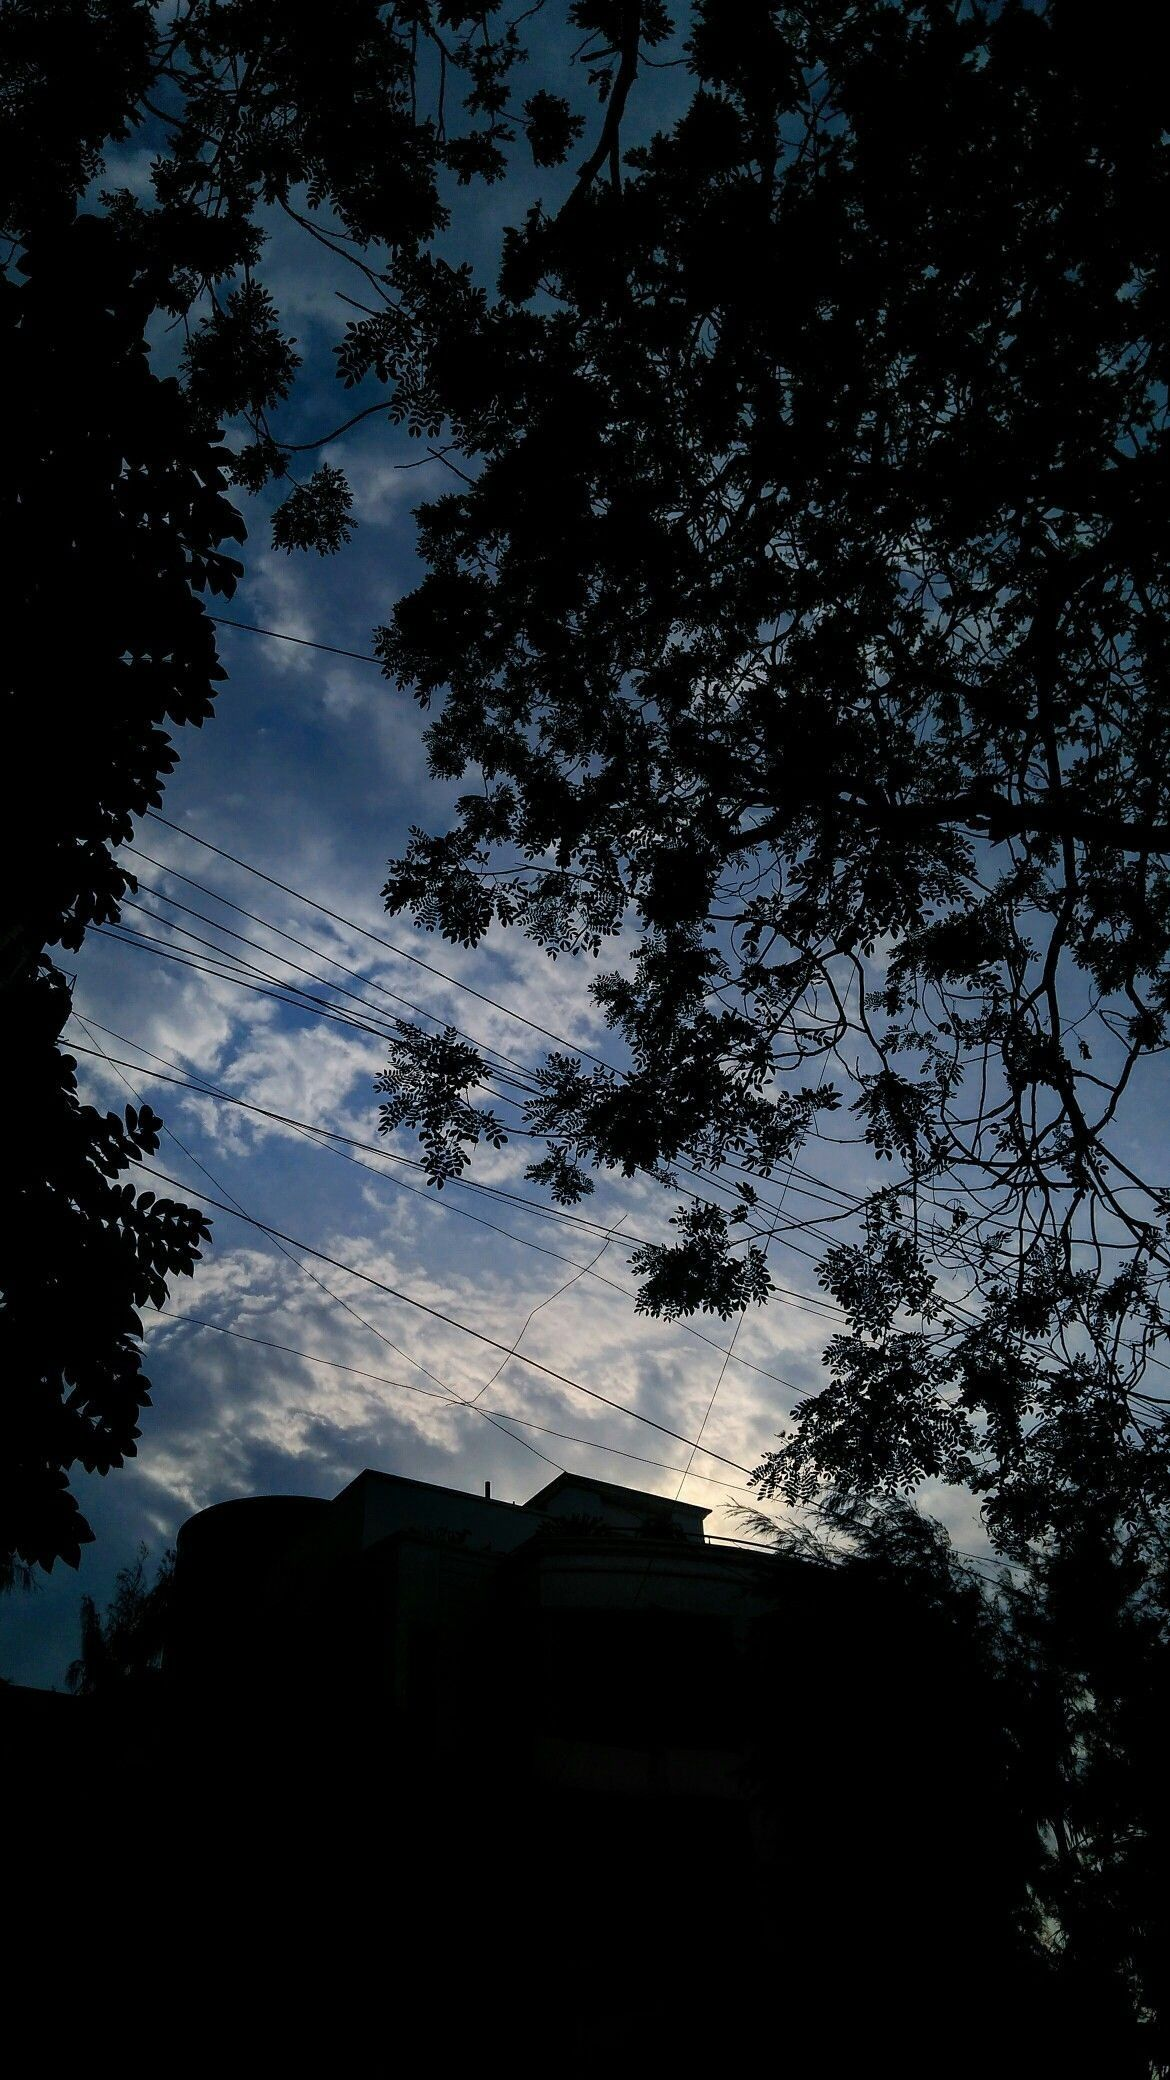 Clouds Nature Photography Sky Aesthetic Scenery Wallpaper